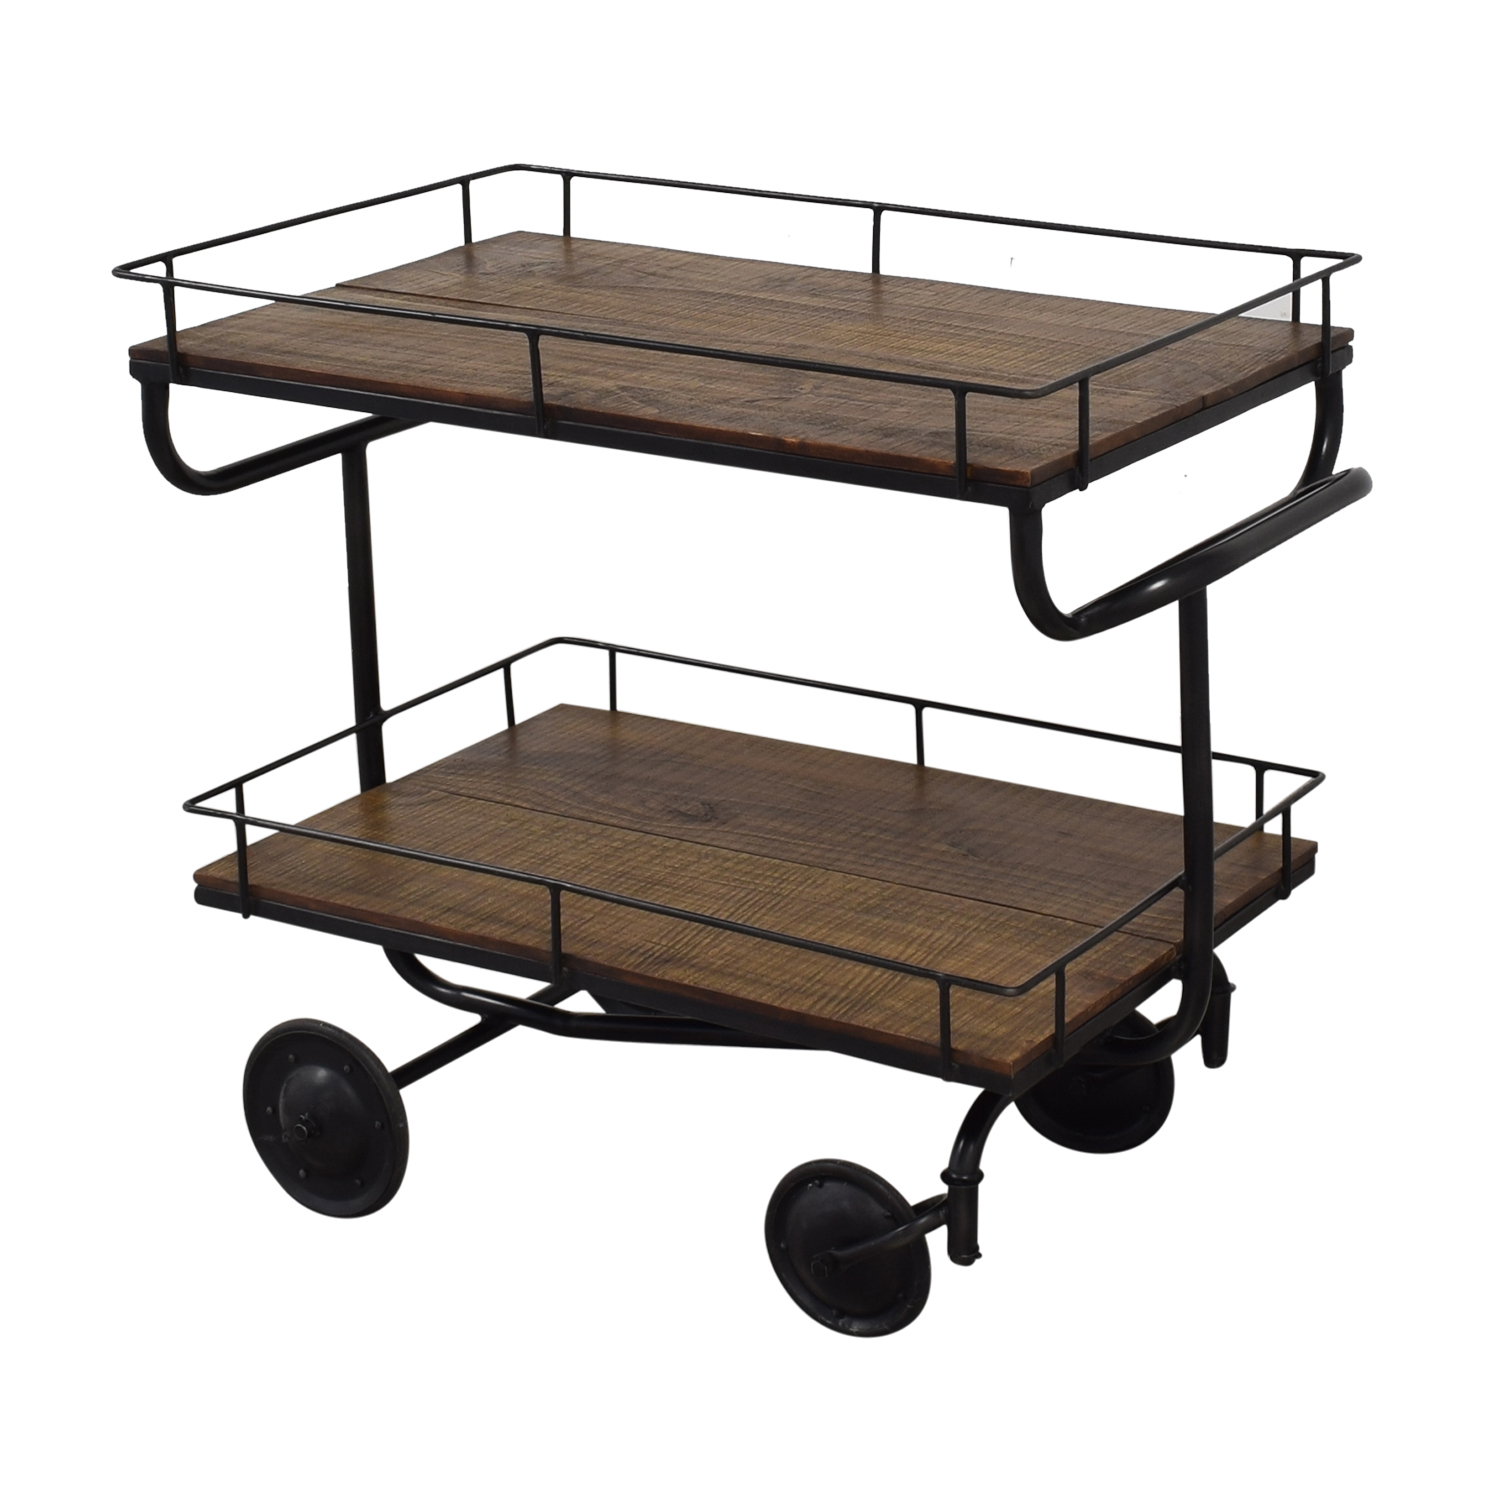 Restoration Hardware Restoration Hardware Warehouse Trolley Bar Cart coupon